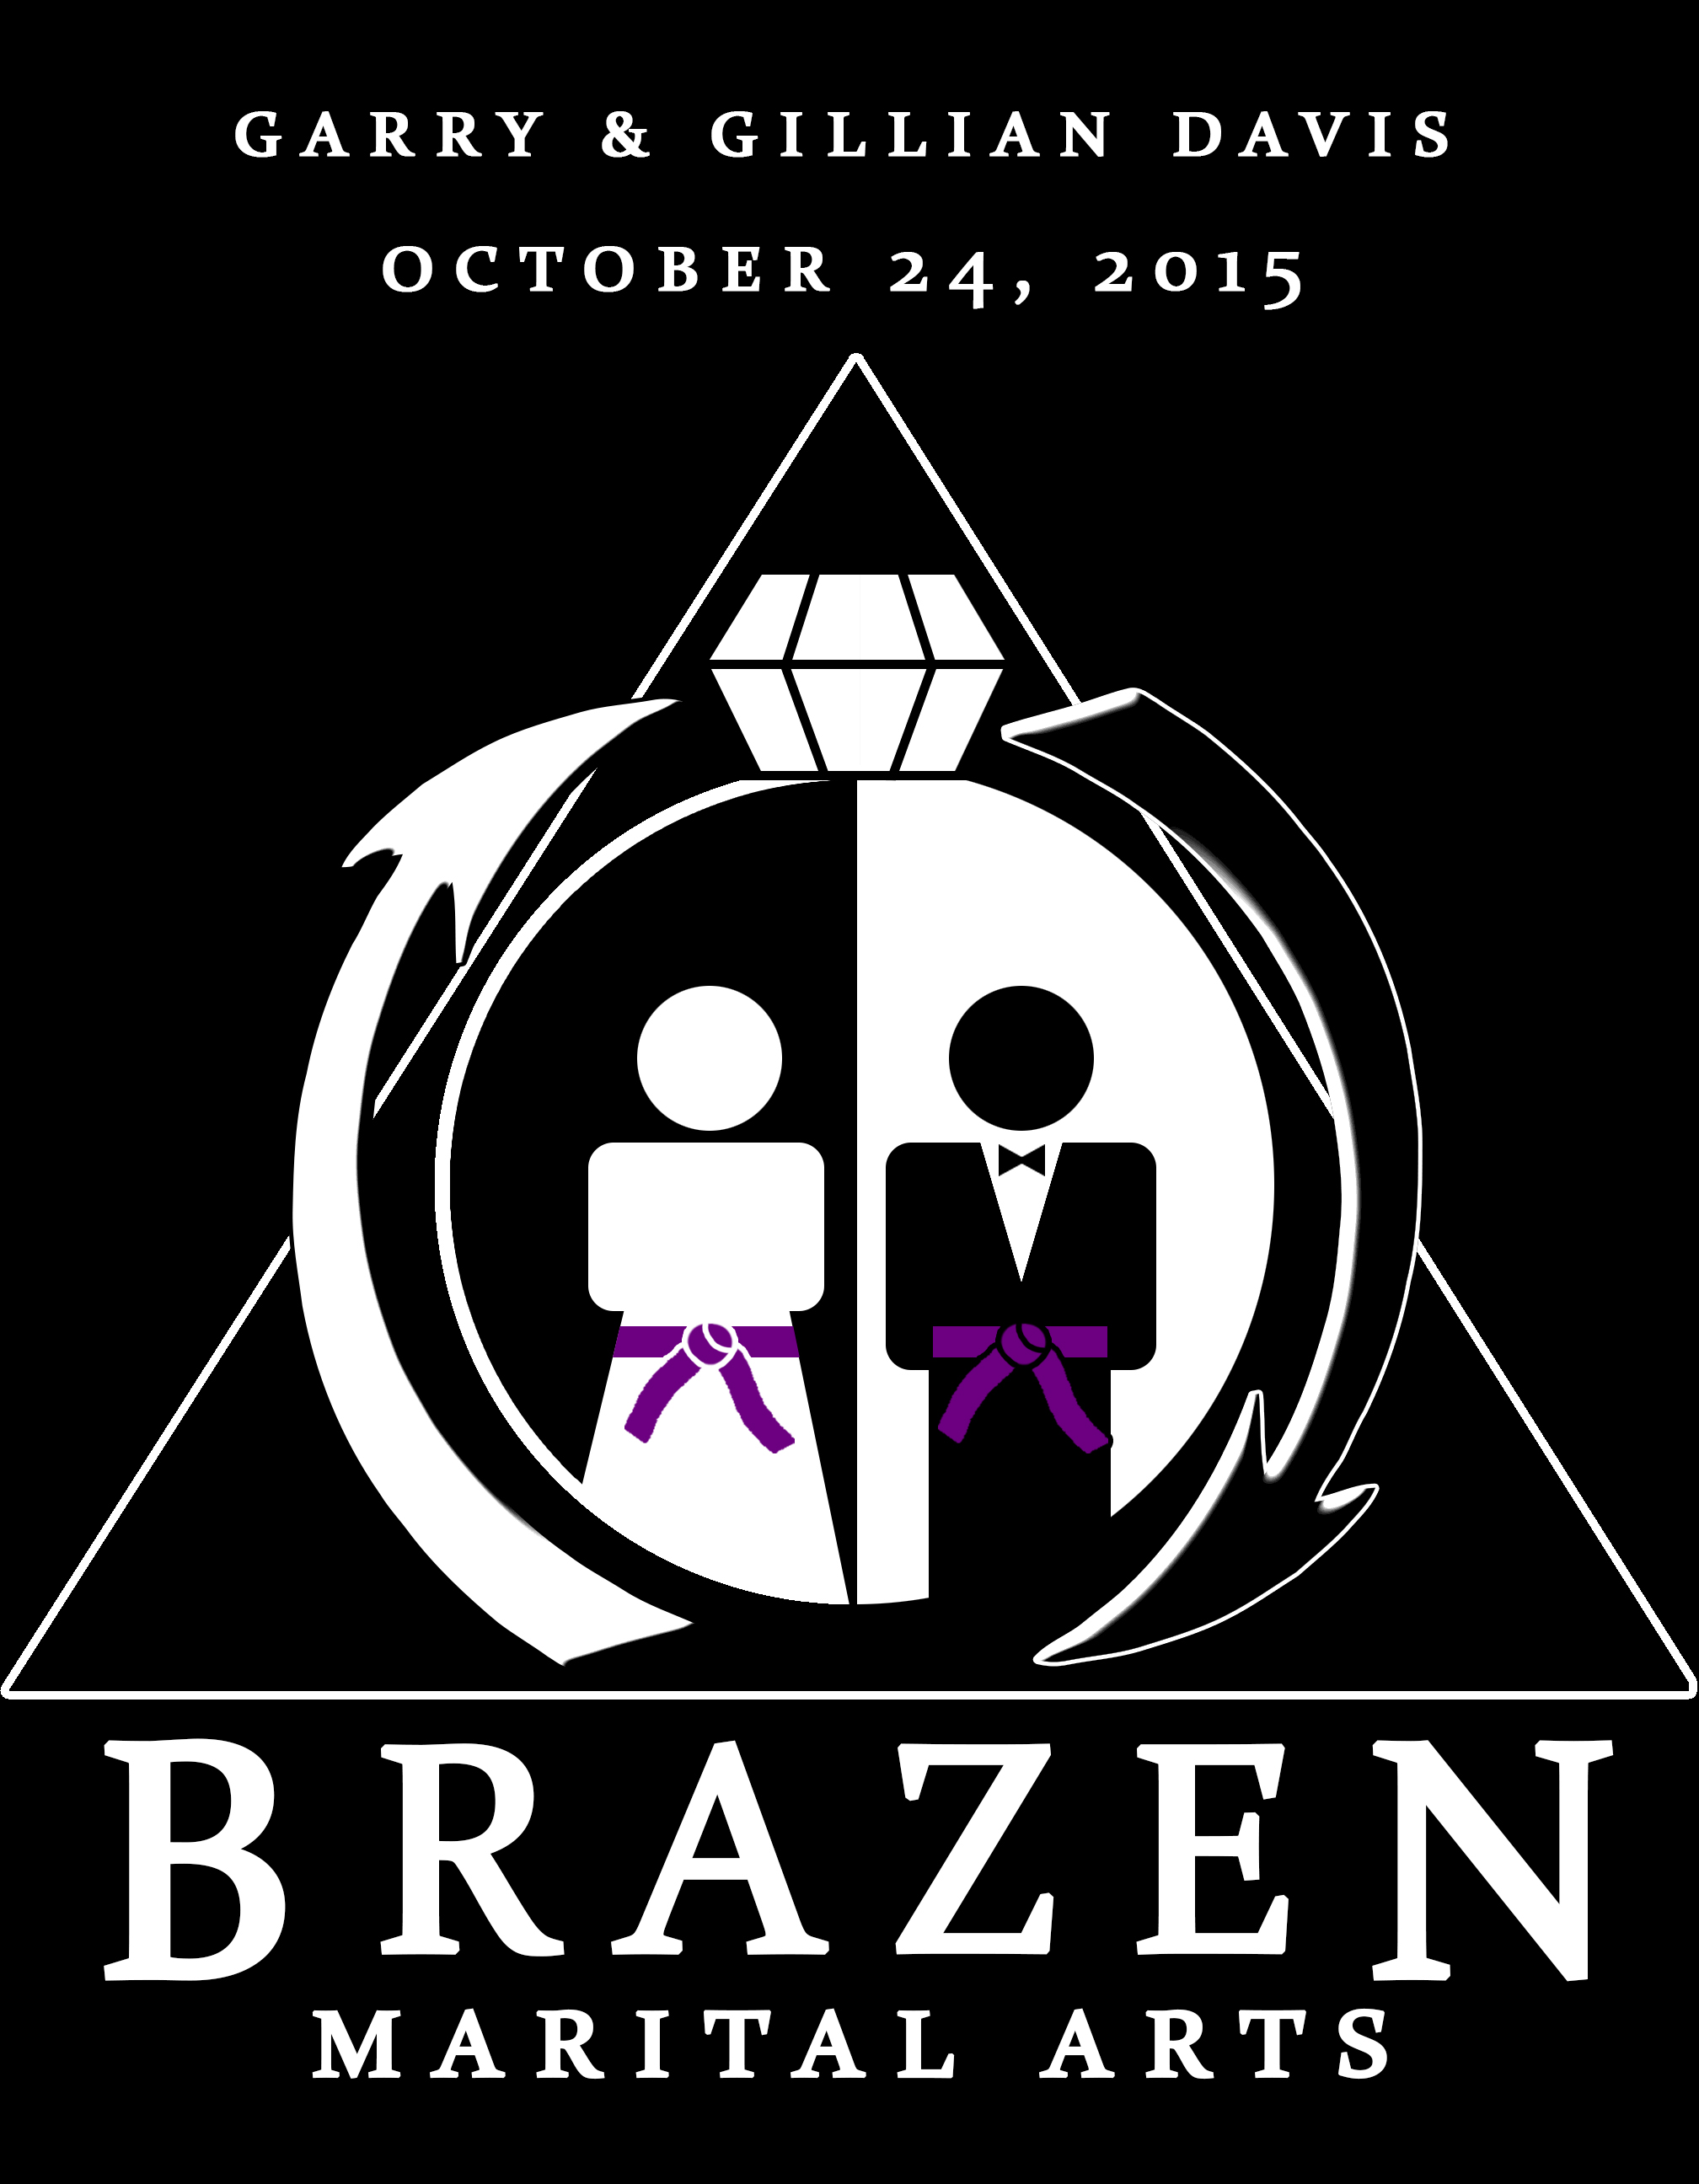 Wedding Brazen Inverted